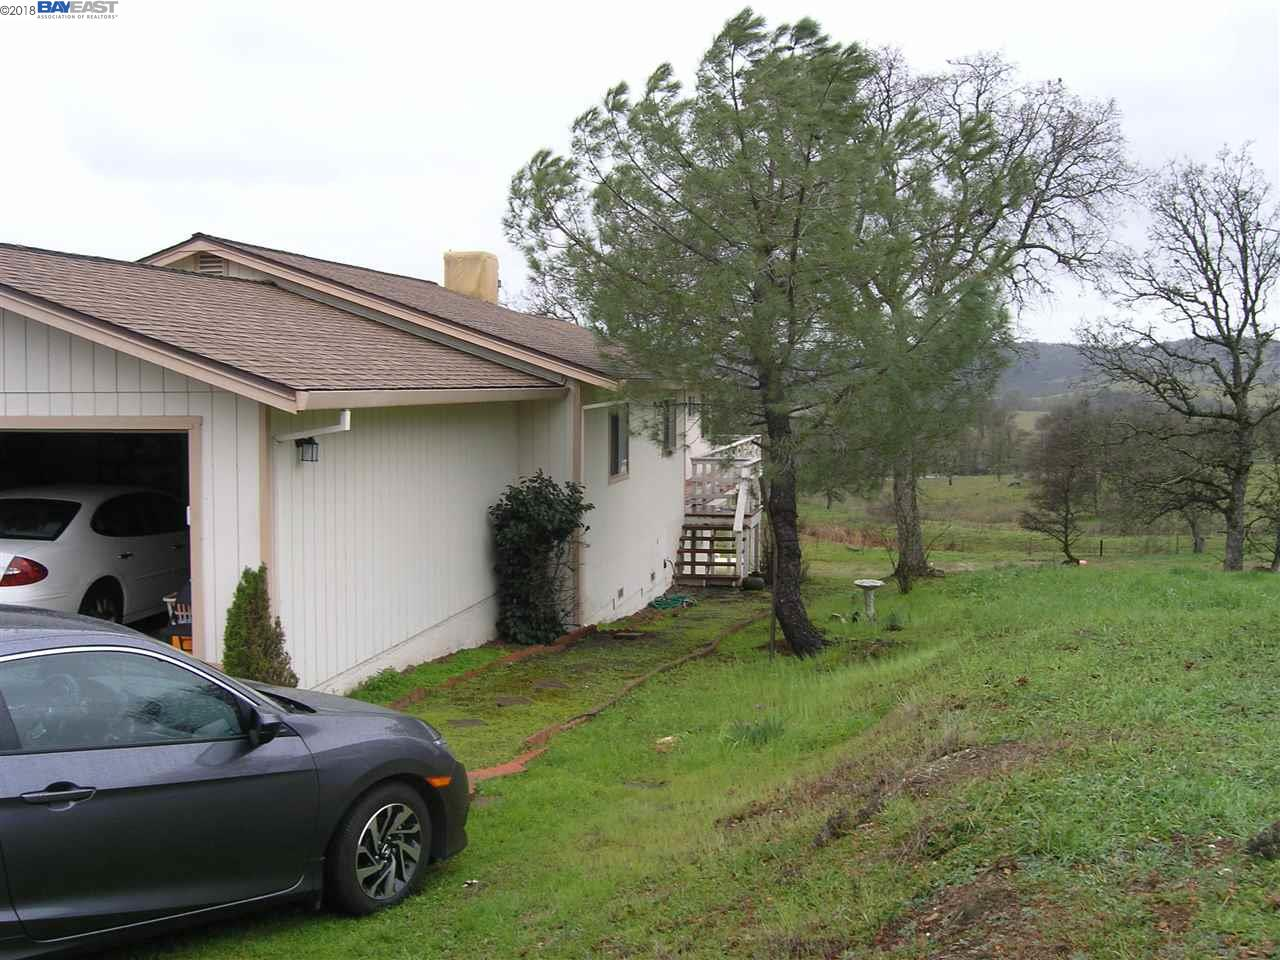 Casa Unifamiliar por un Venta en 4990 Little John Road 4990 Little John Road Copperopolis, California 95228 Estados Unidos